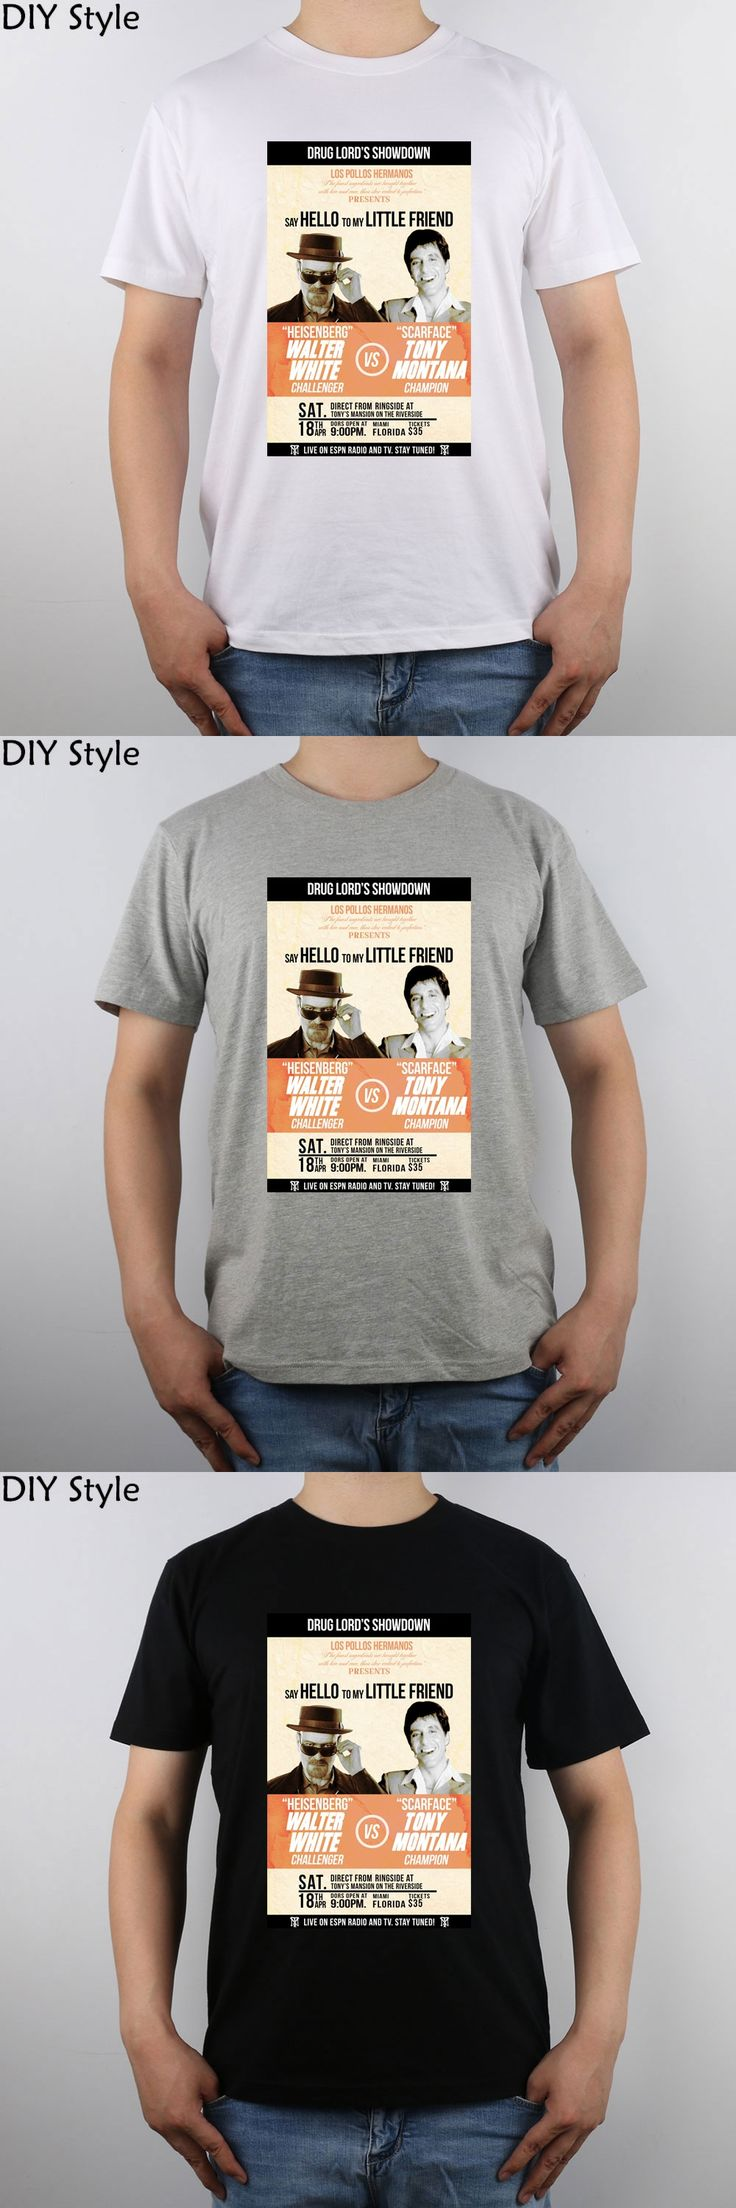 Heisenberg Vs Scarface Showdown t-shirt Top Pure Cotton Men T Shirt New Design High Quality